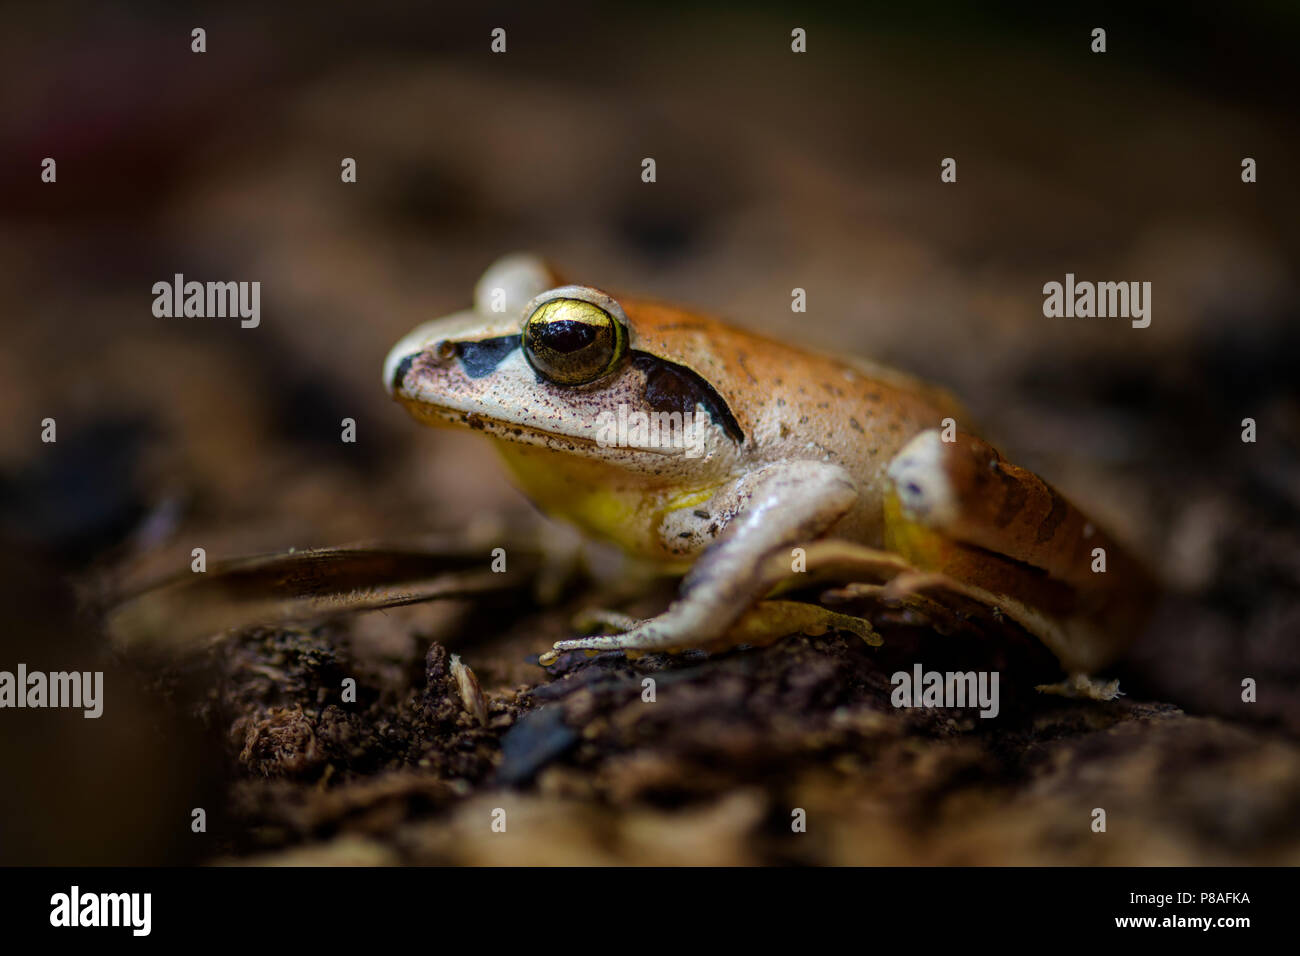 Madagascan Wood Frog - Aglyptodactylus madagascariensis, beautiful colored frog from Madagascar forests. - Stock Image